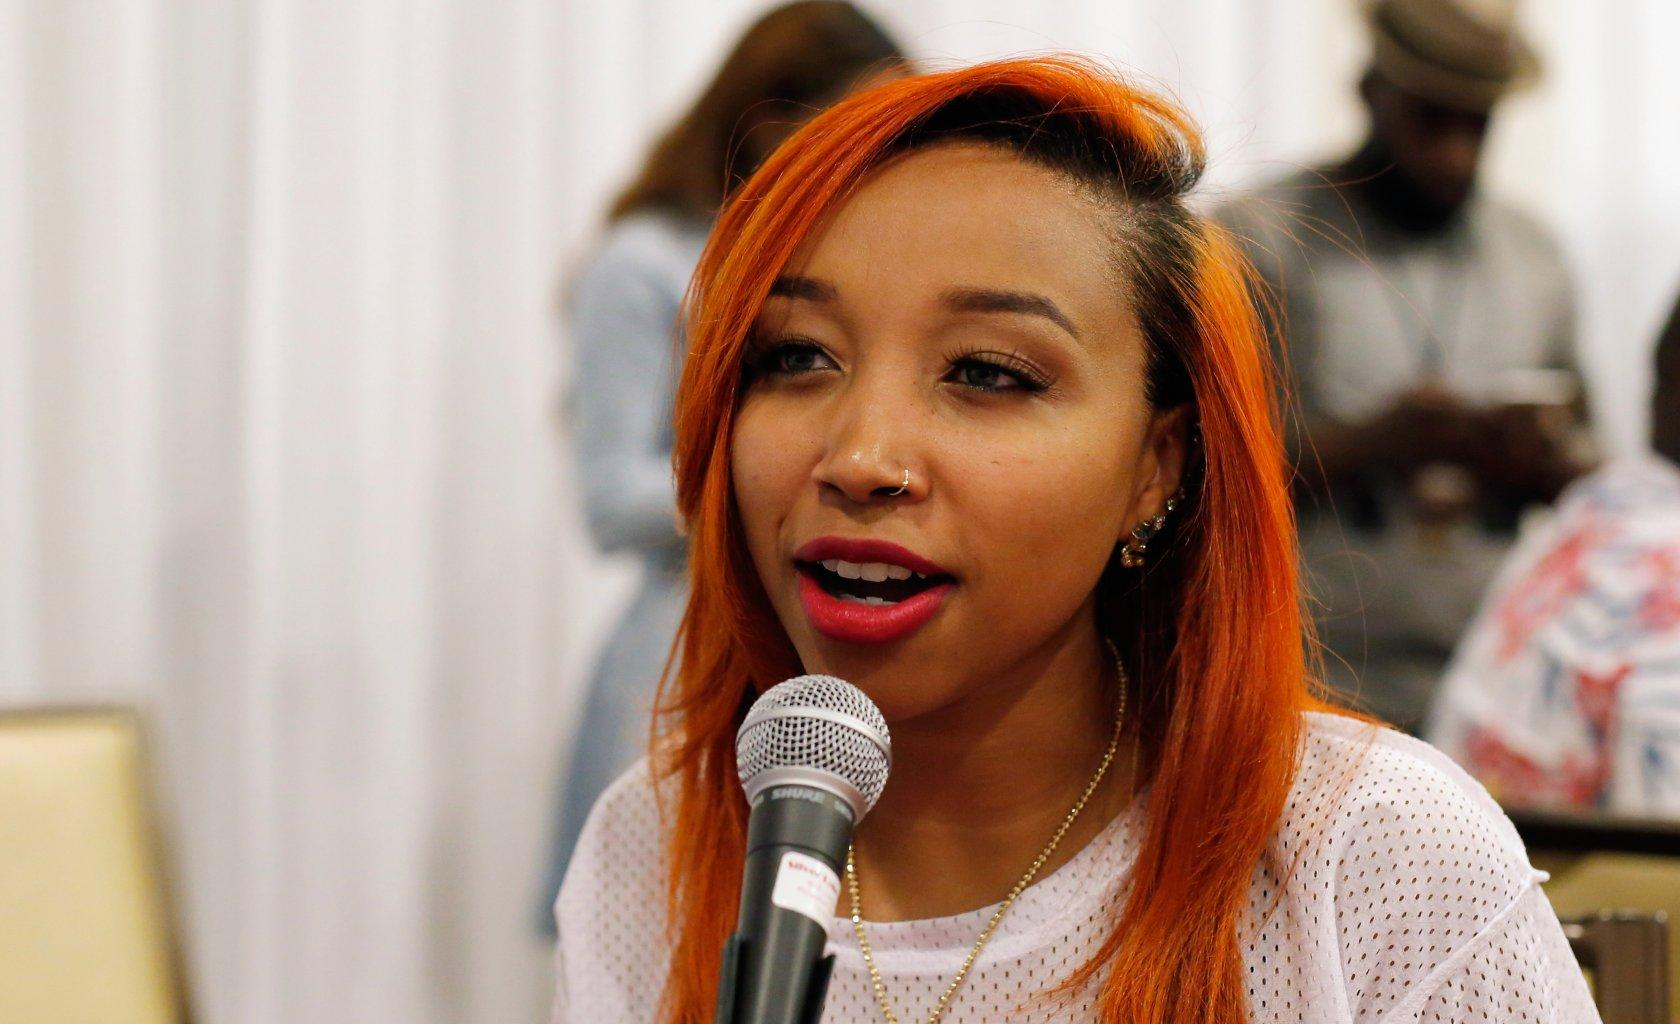 Zonnique Pullins Has Fans Complimenting Her Following The Latest Photo